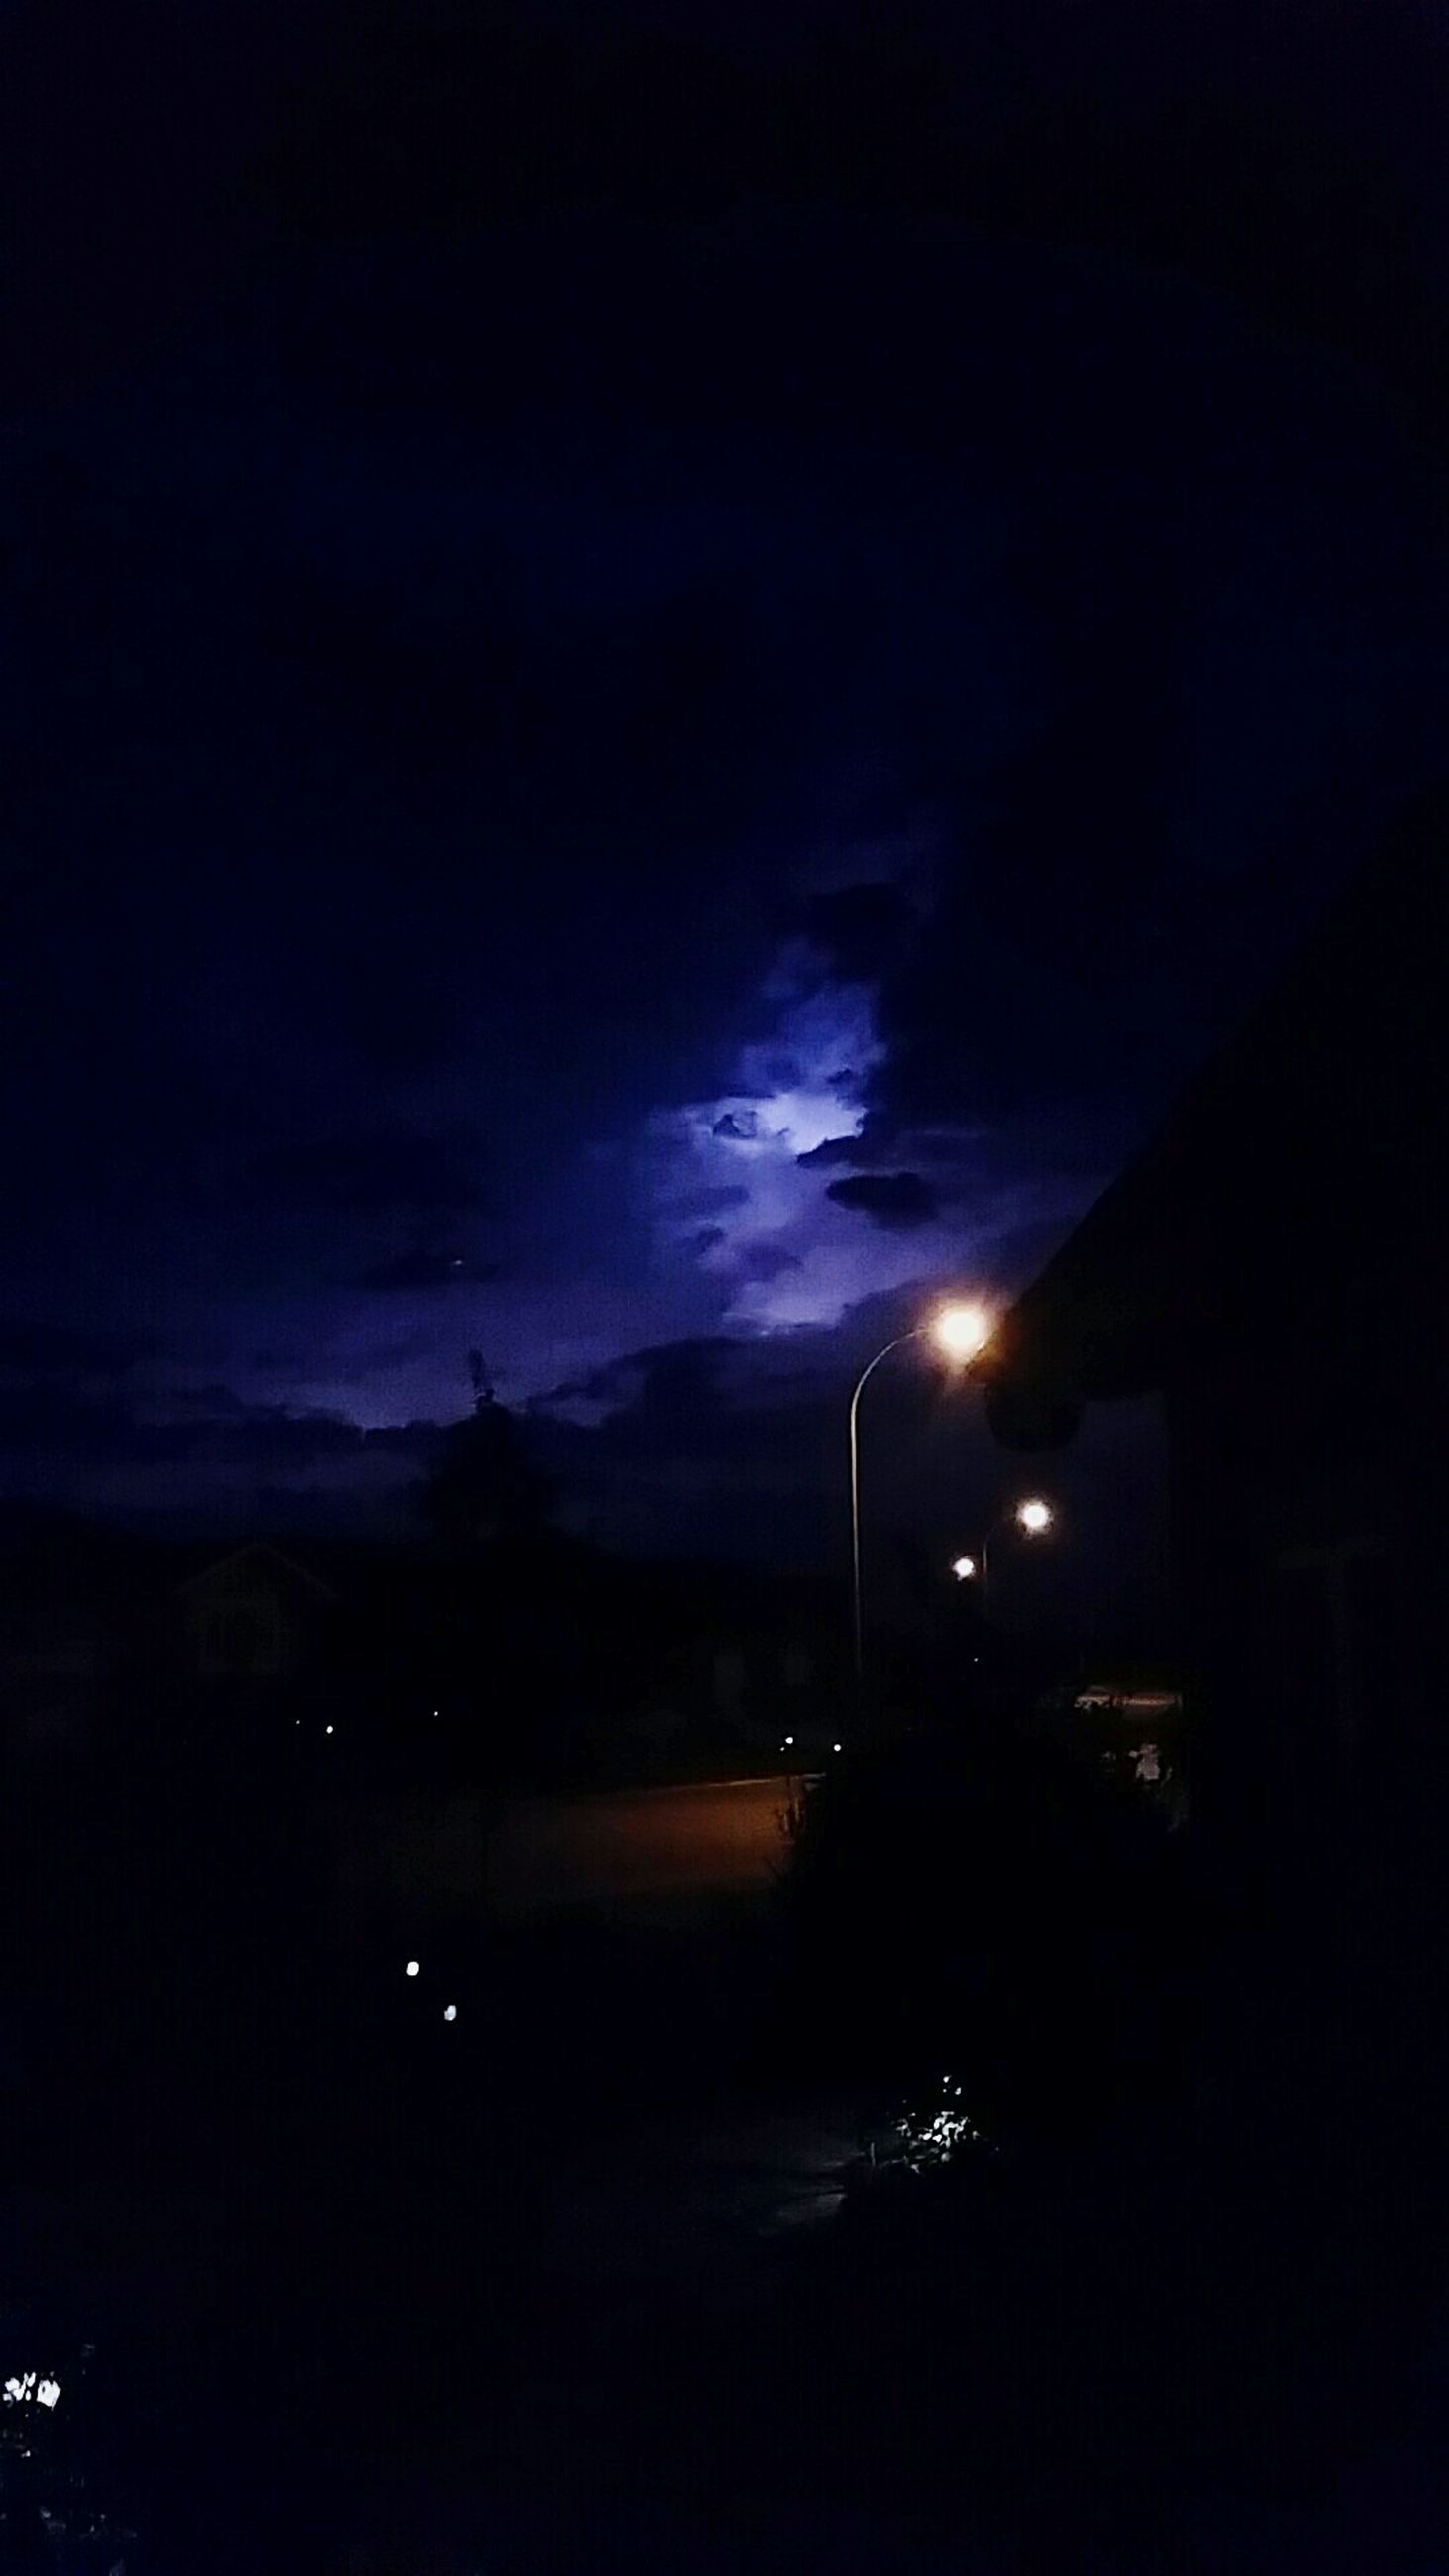 night, sky, illuminated, dark, built structure, building exterior, cloud - sky, silhouette, architecture, dusk, weather, cloudy, street light, nature, outdoors, city, storm cloud, scenics, beauty in nature, no people